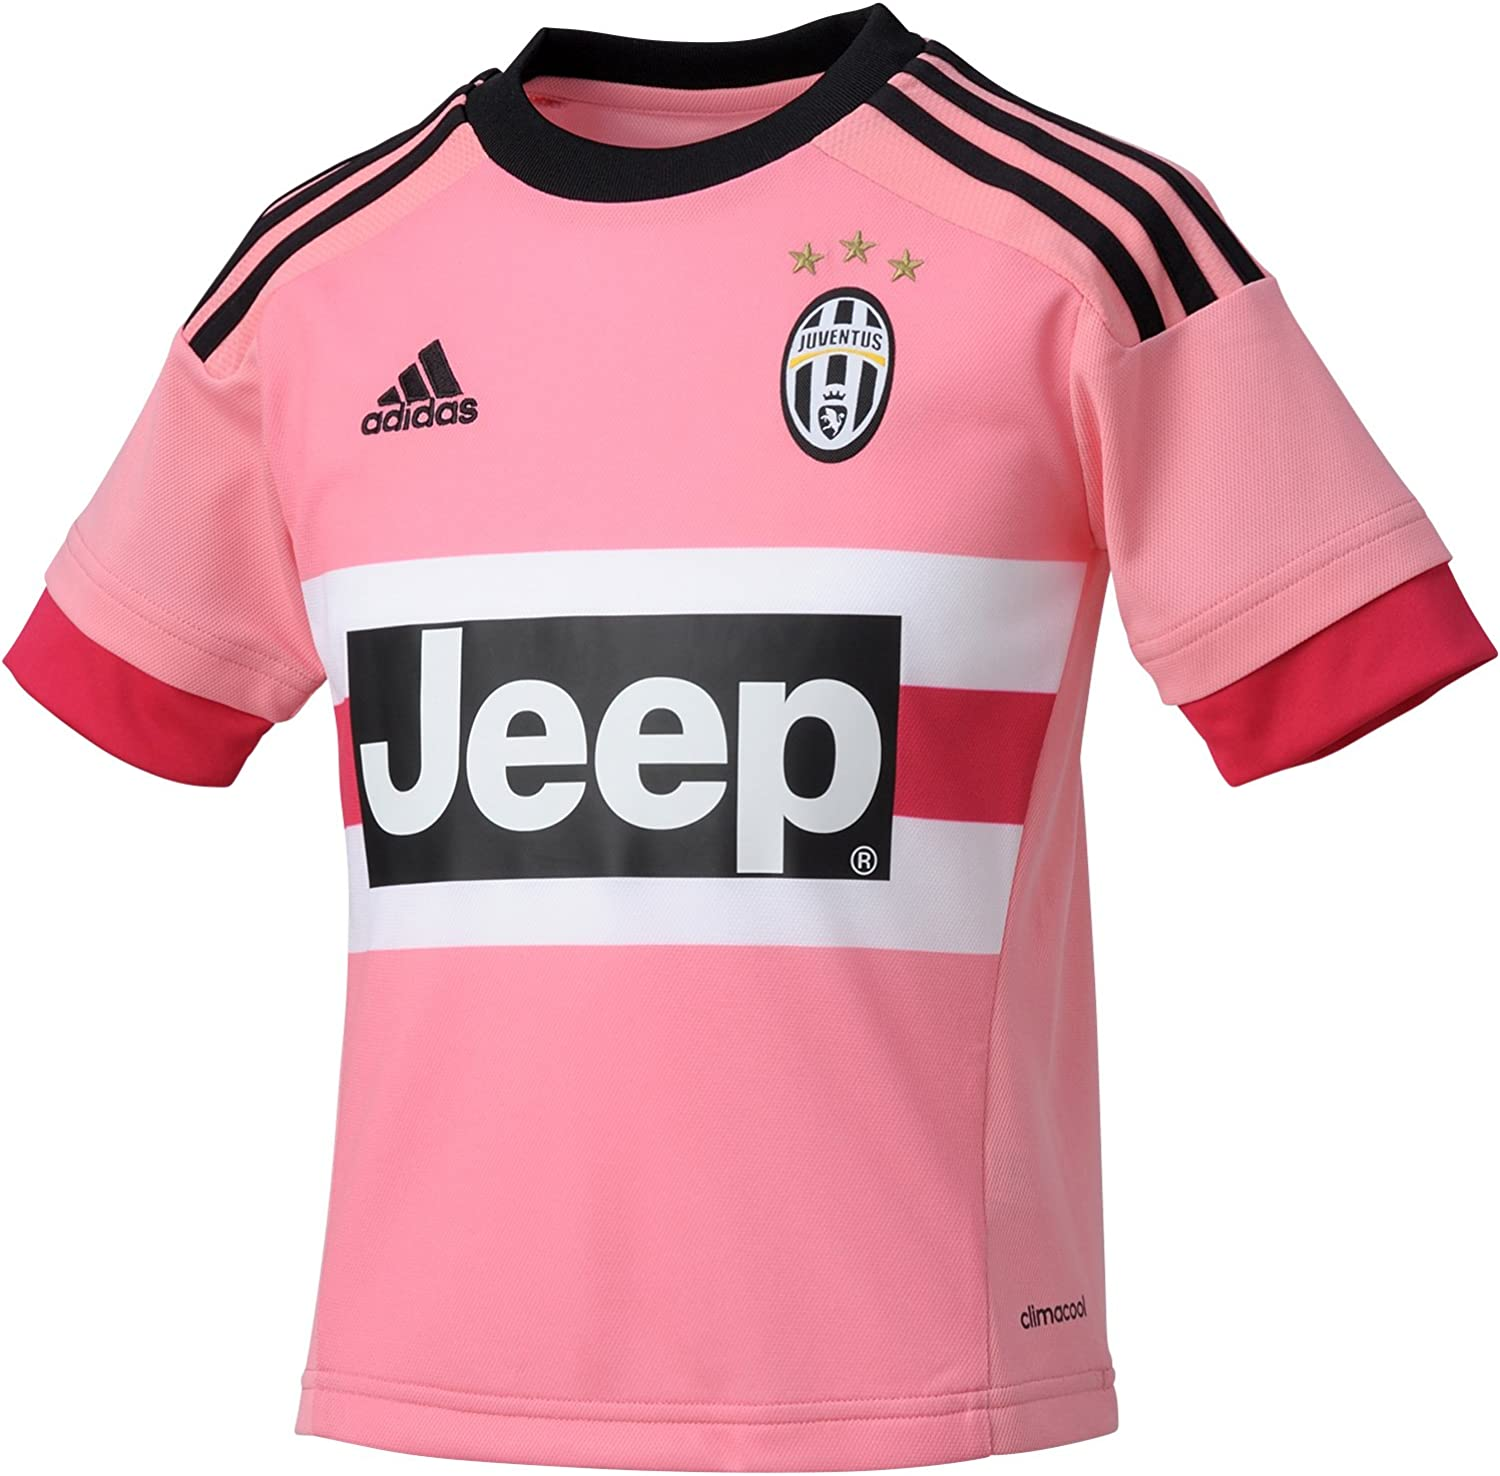 Download Juventus Pink Jersey Star